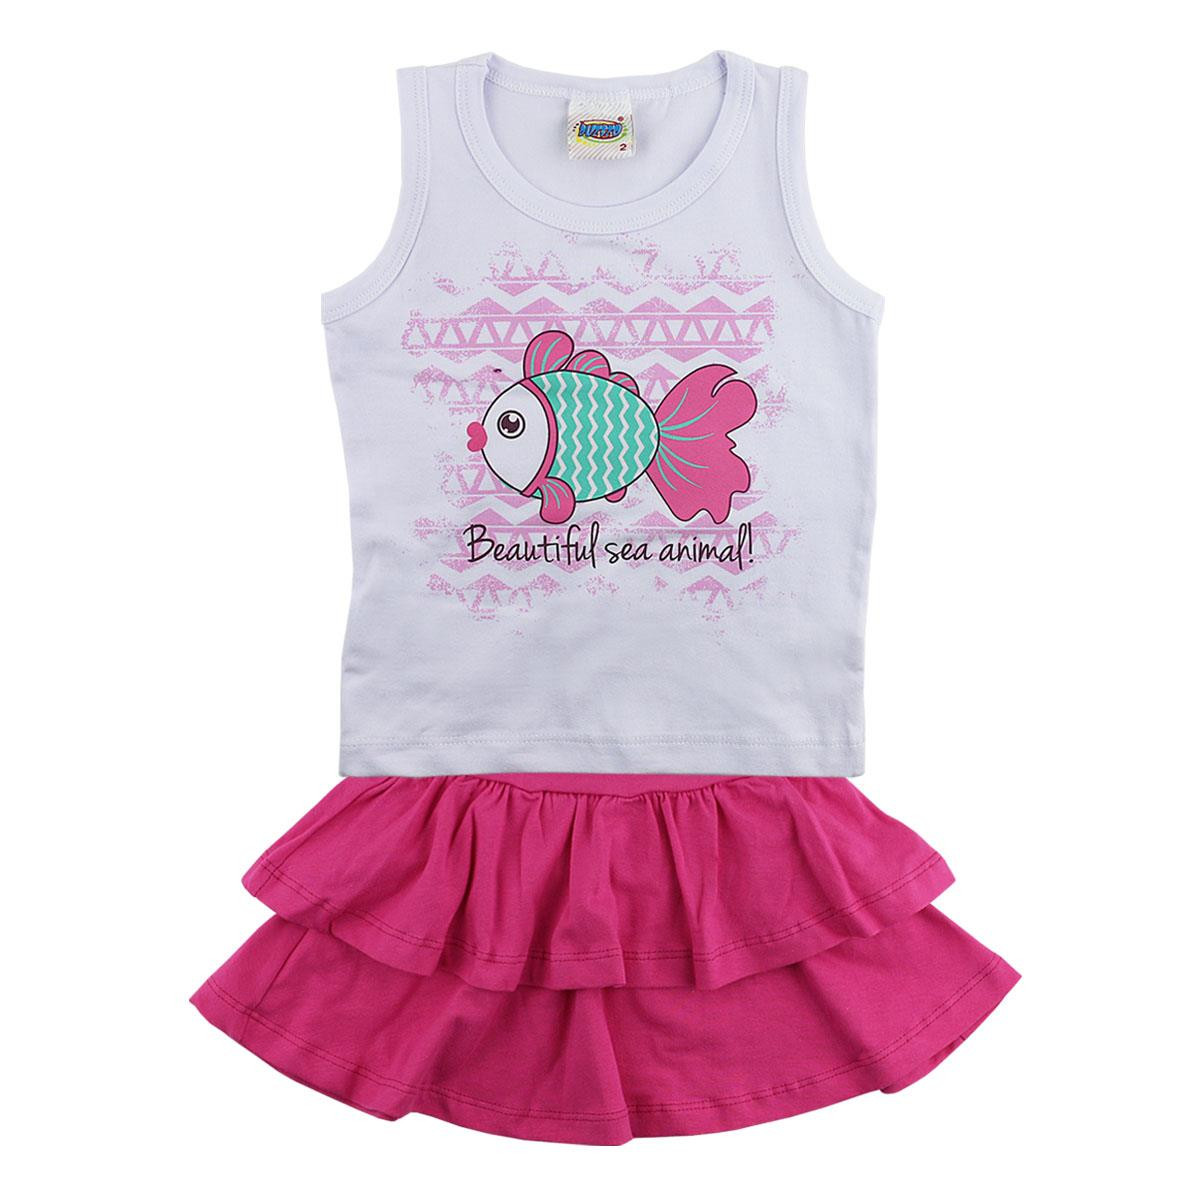 CONJUNTO BLUSA E SHORTS BEAUTIFUL SEA ANIMAL 01 À 03 ANOS DUZIZO